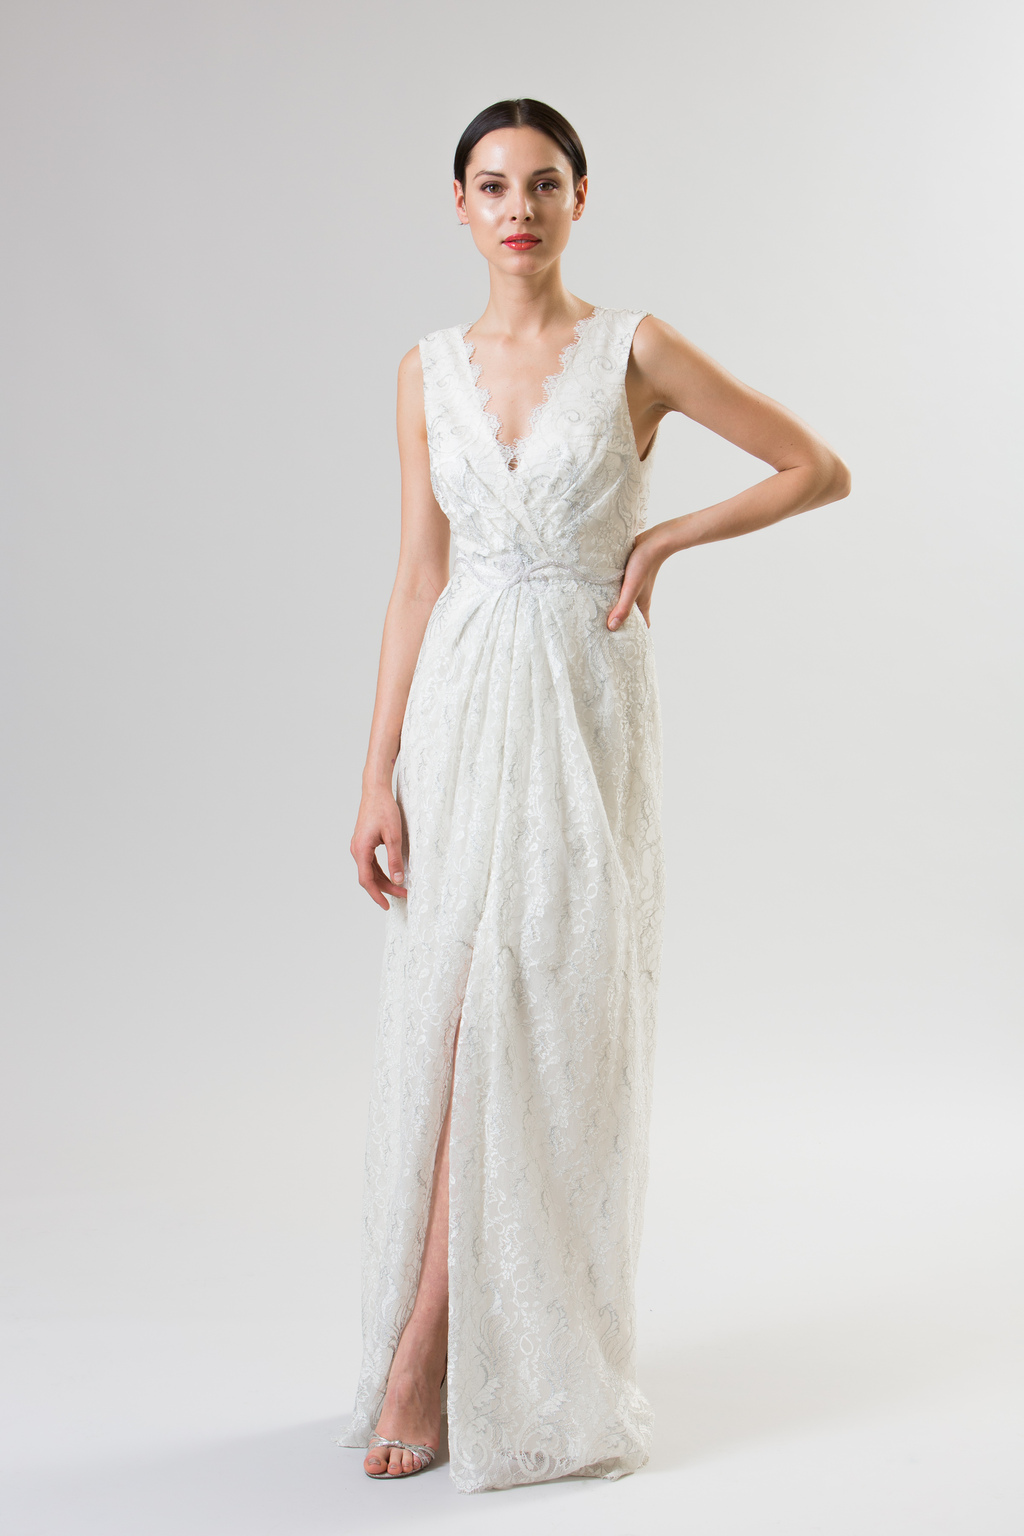 Junko-yoshioka-summer-spring-2014-wedding-dress-frambois_1.full